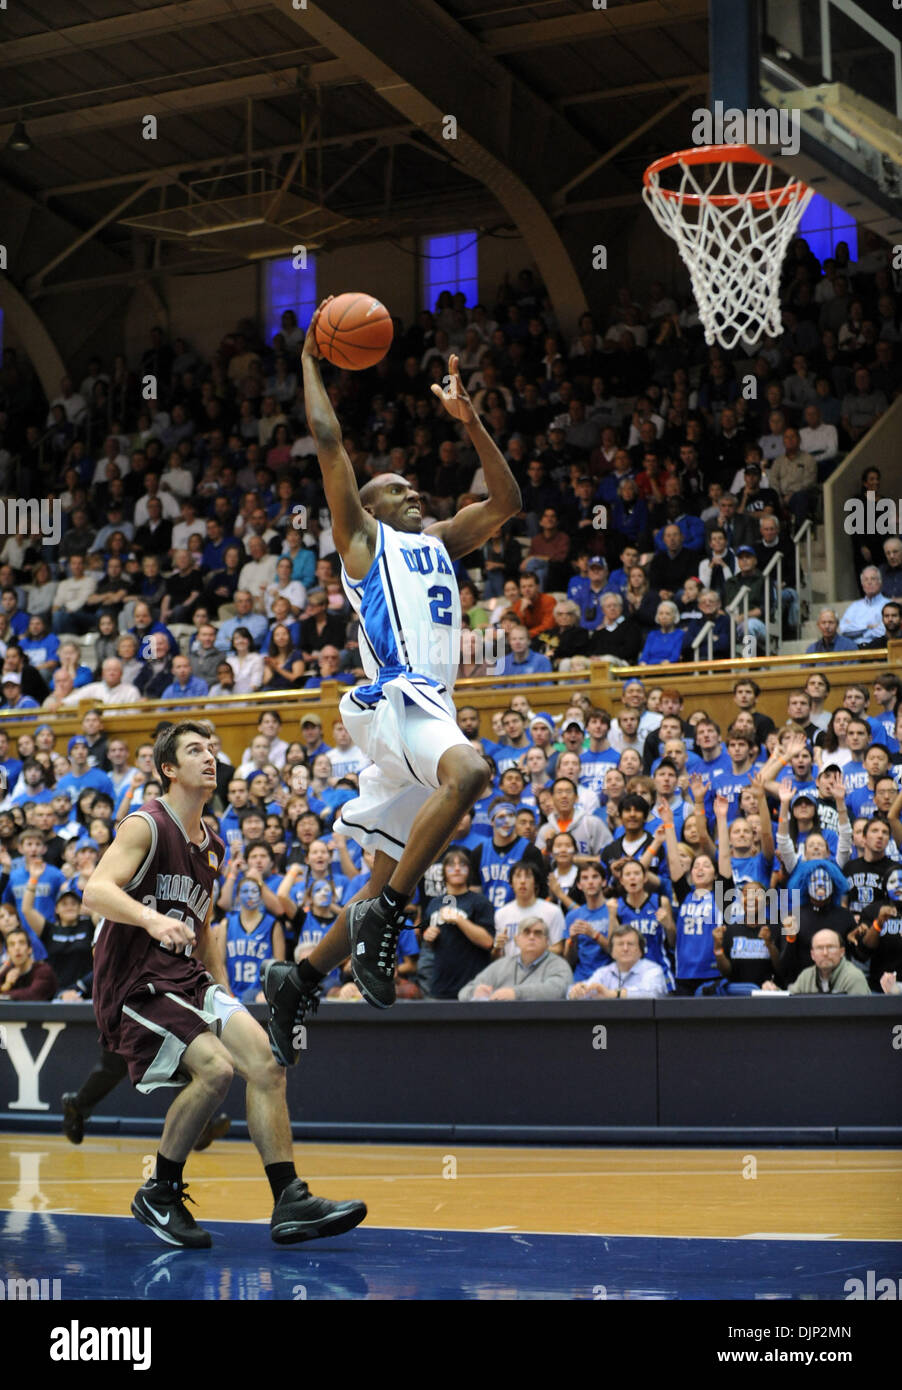 Nov 23, 2008 - Durham, North Carolina, USA - NCAA Basketball: Duke Bluedevils (2) NOLAN SMITH dunks the basketball as the Duke University Bluedevils defeat the University of Montana Grizzlies with a final score of 78-58 as they played mens college basketball at Cameron Indoor Stadium located in Durham.  (Credit Image: © Jason Moore/ZUMA Press) - Stock Image